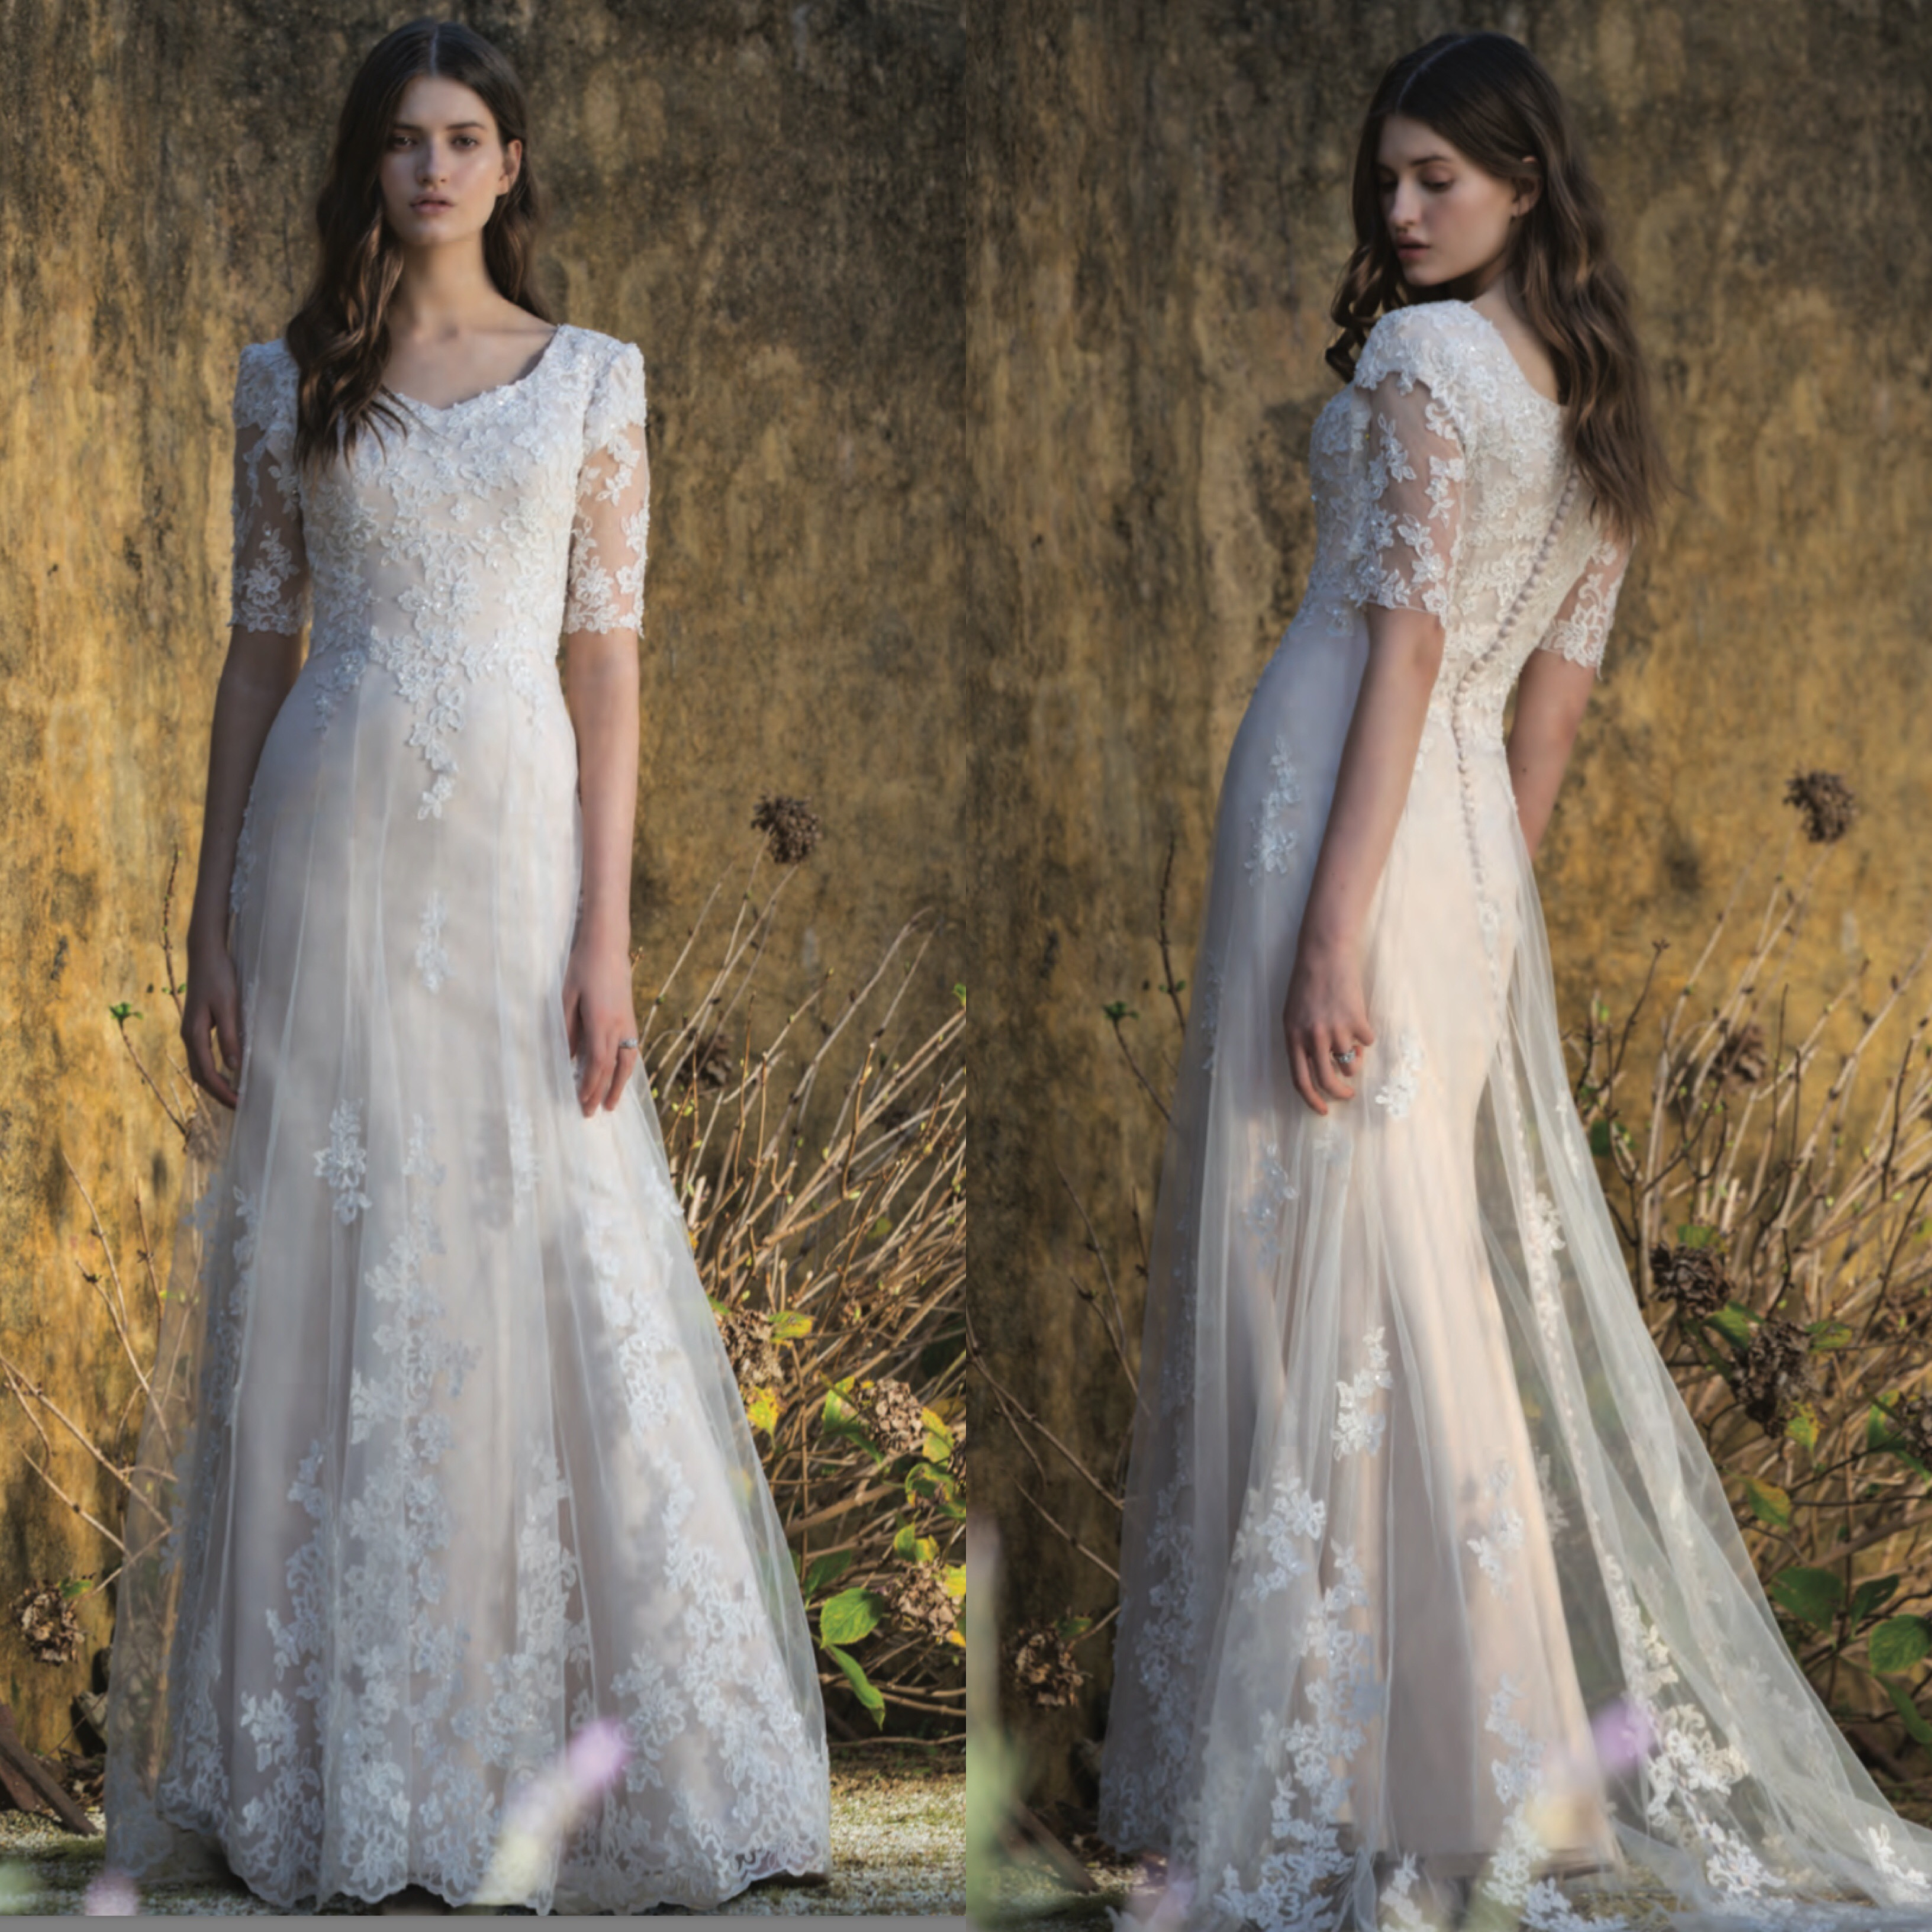 T1682z Bridal Collection 5 Dresses